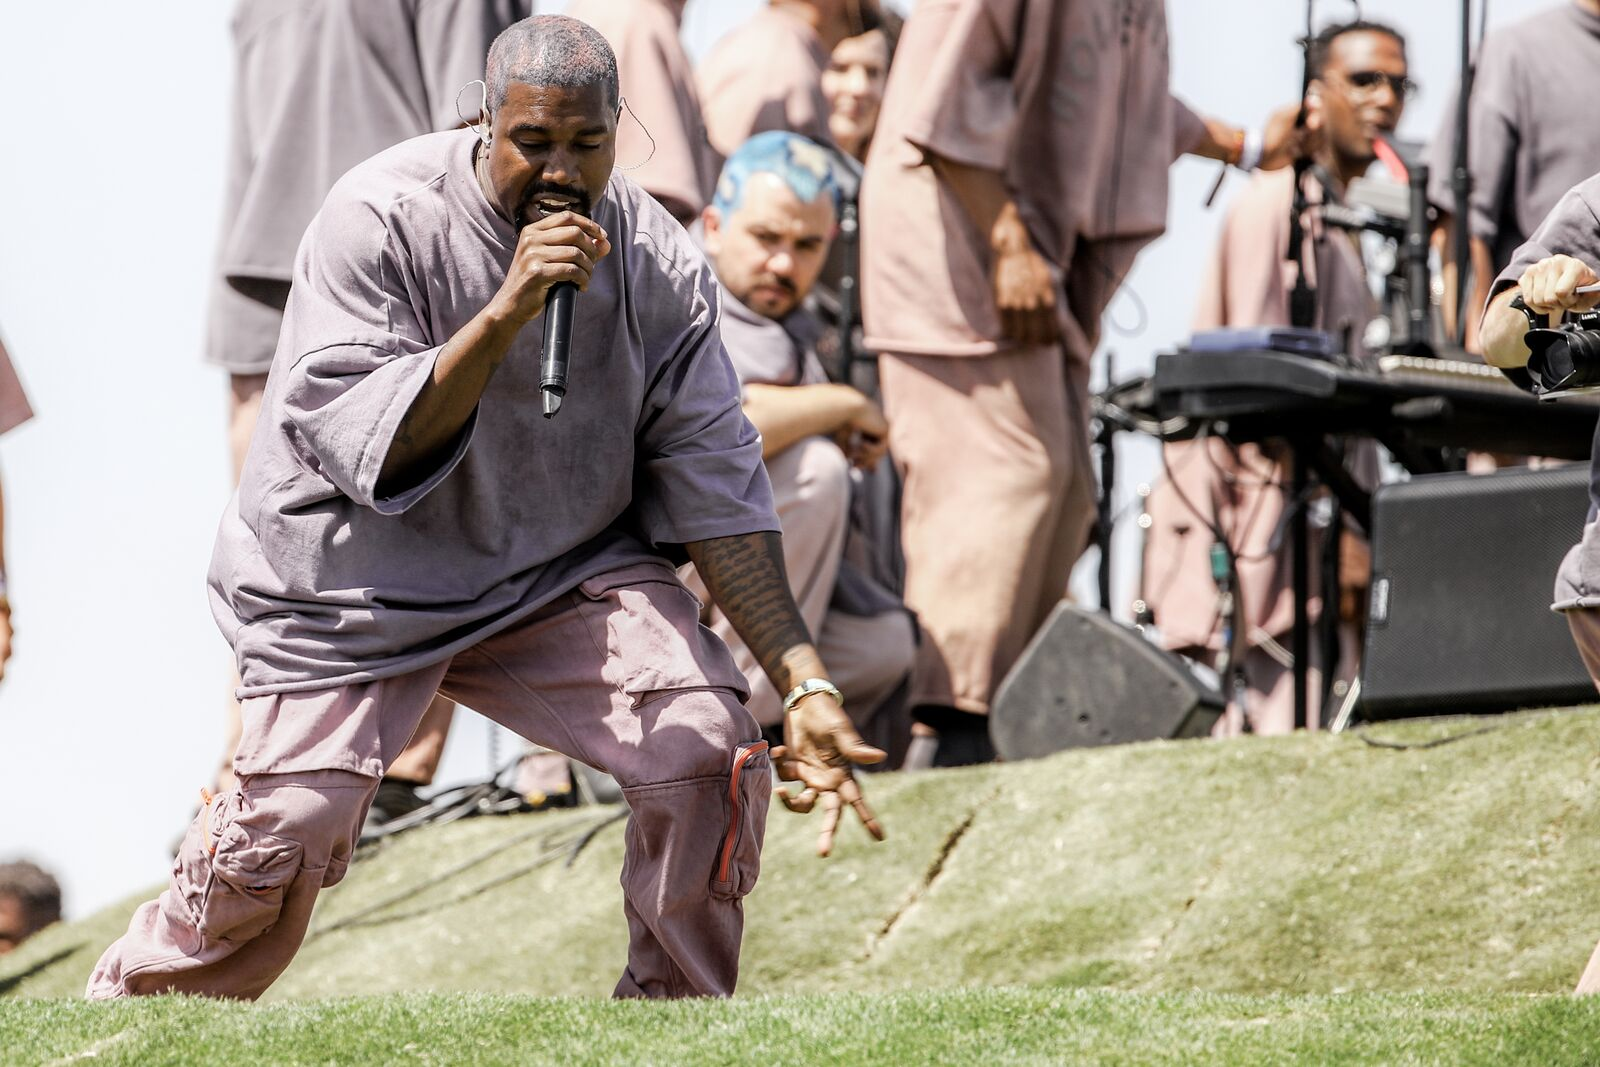 Kanye West performing at his Sunday Service in California | Source: Getty Images/GlobalImagesUkraine